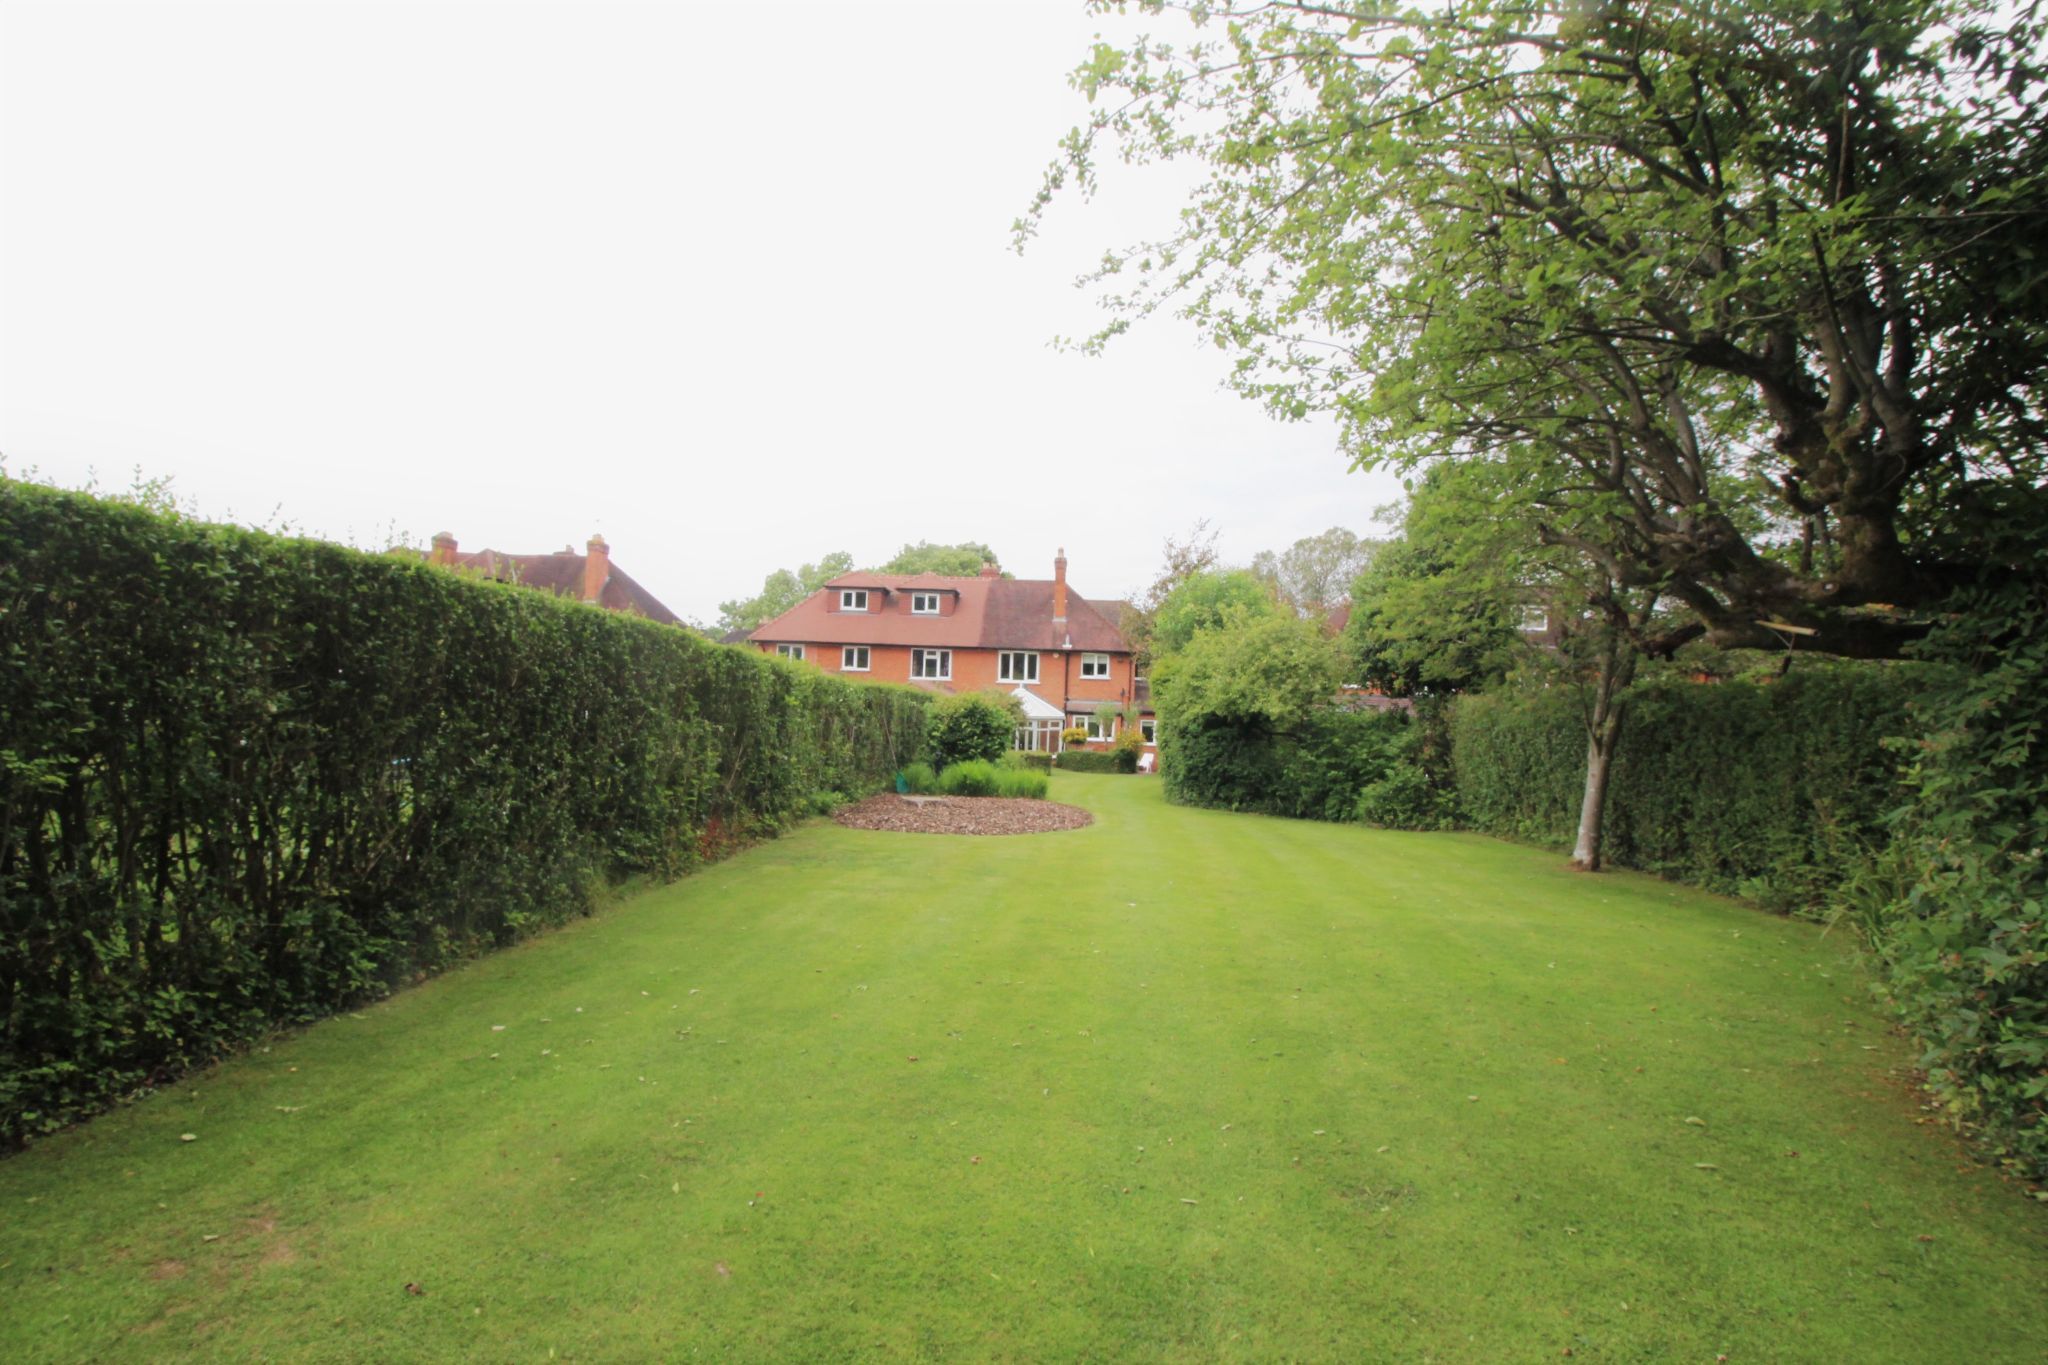 4 bedroom semi-detached house SSTC in Solihull - Photograph 11.